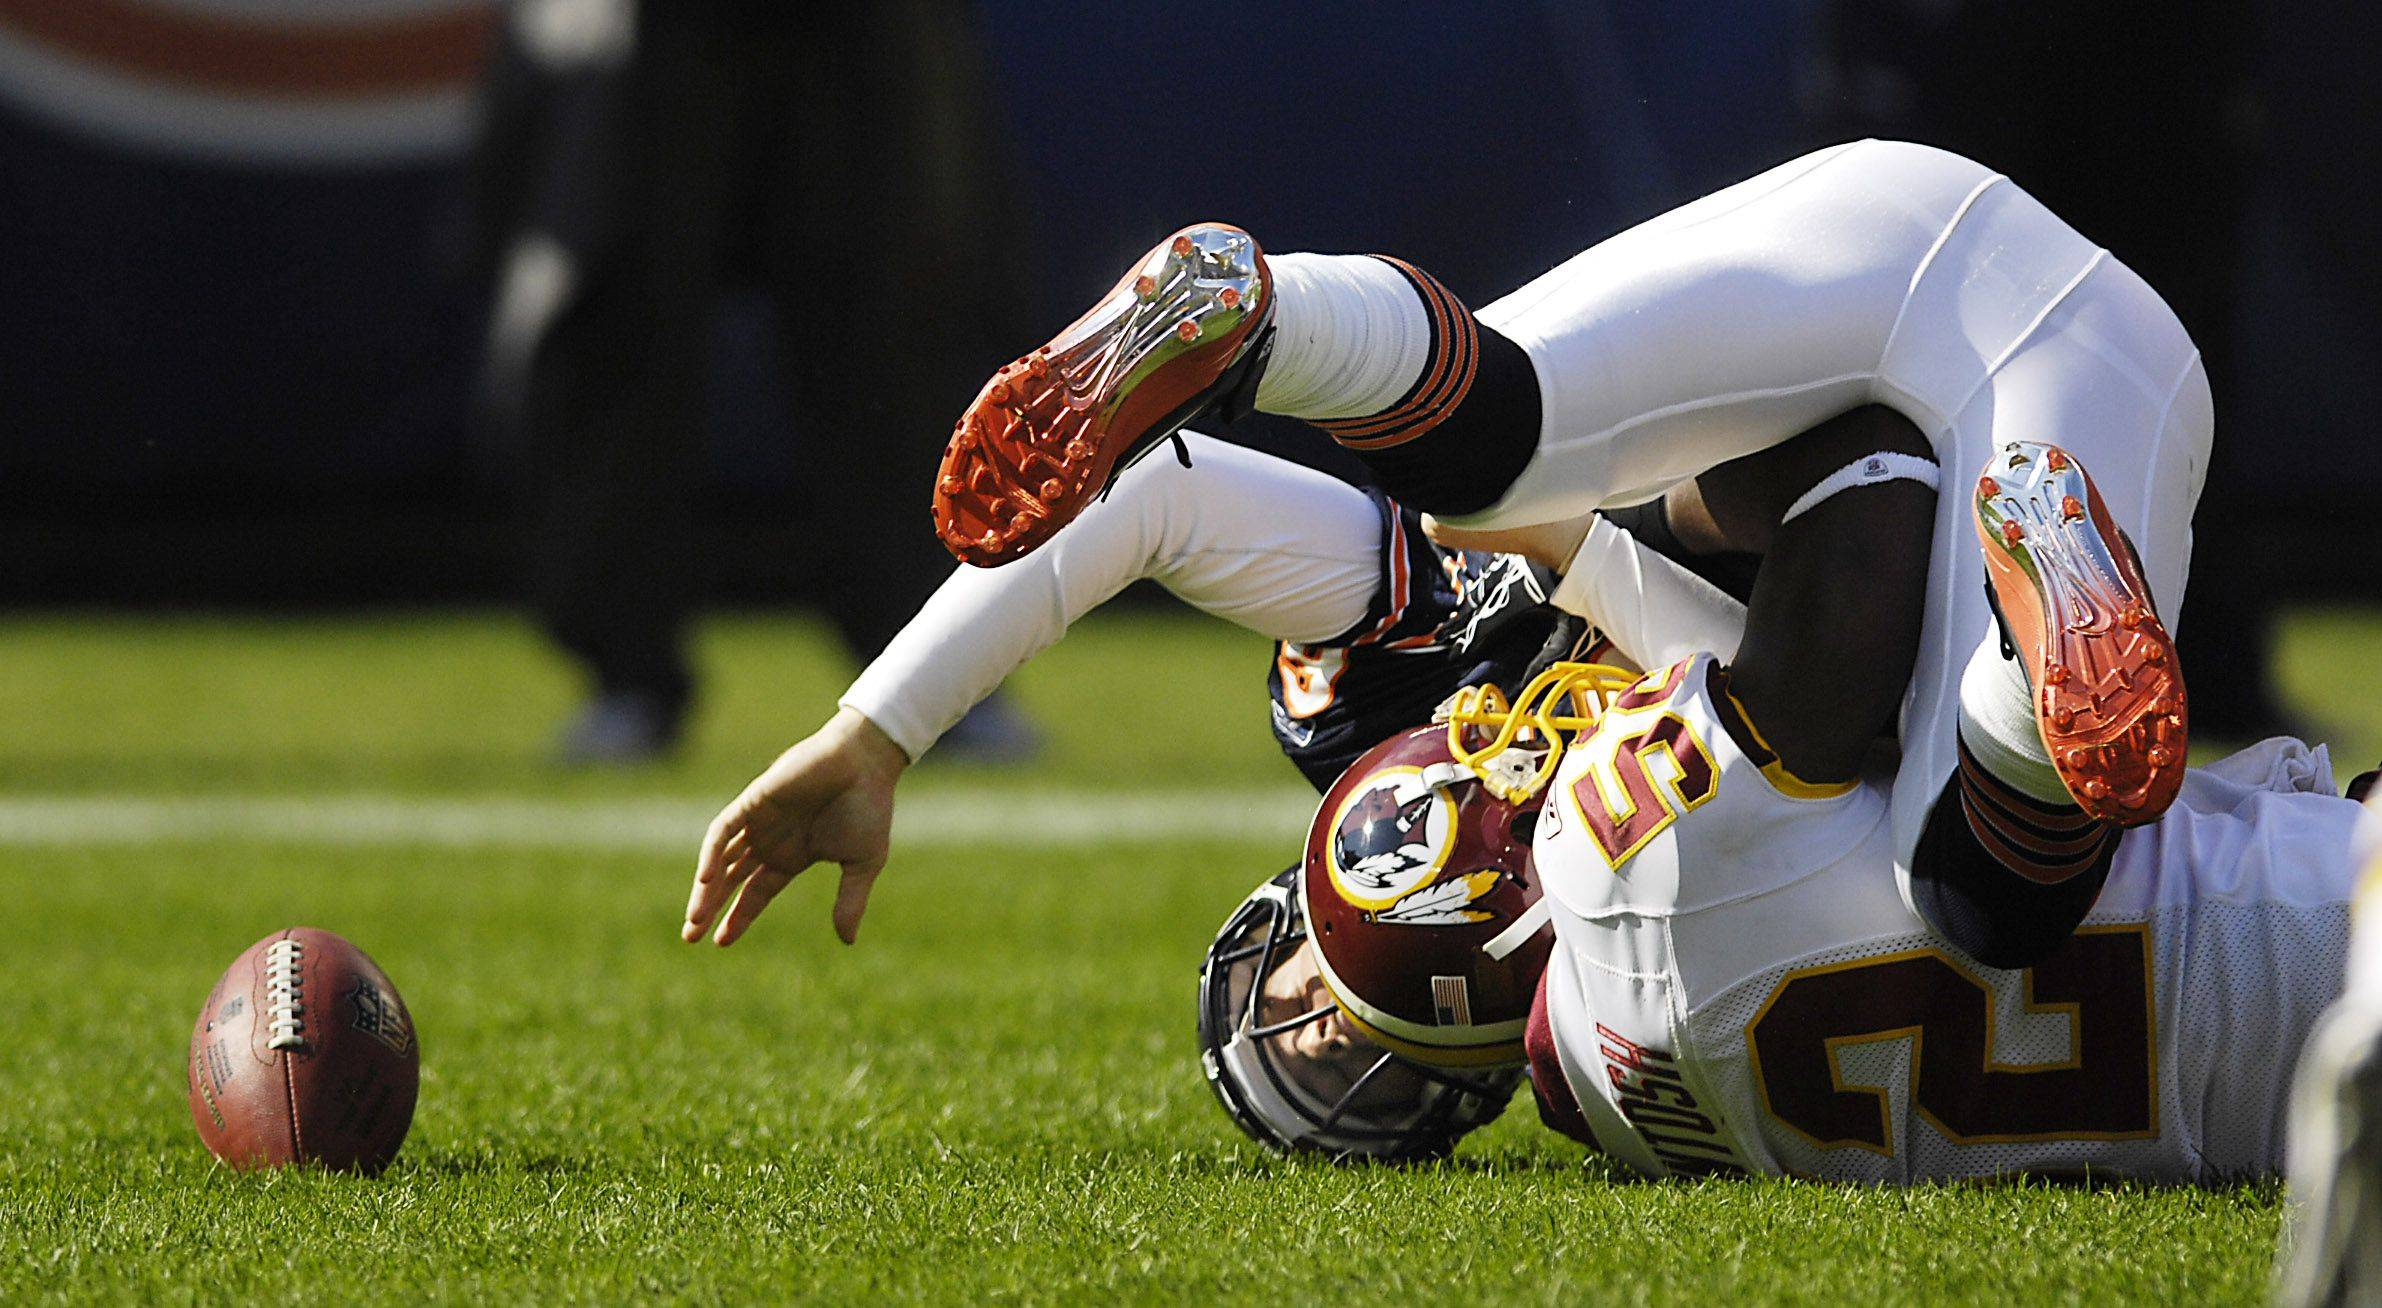 Chicago Bears quarterback Jay Cutler loses the ball as he is sacked by Washington Redskins linebacker Rocky McIntosh. He was ruled down with no fumble.